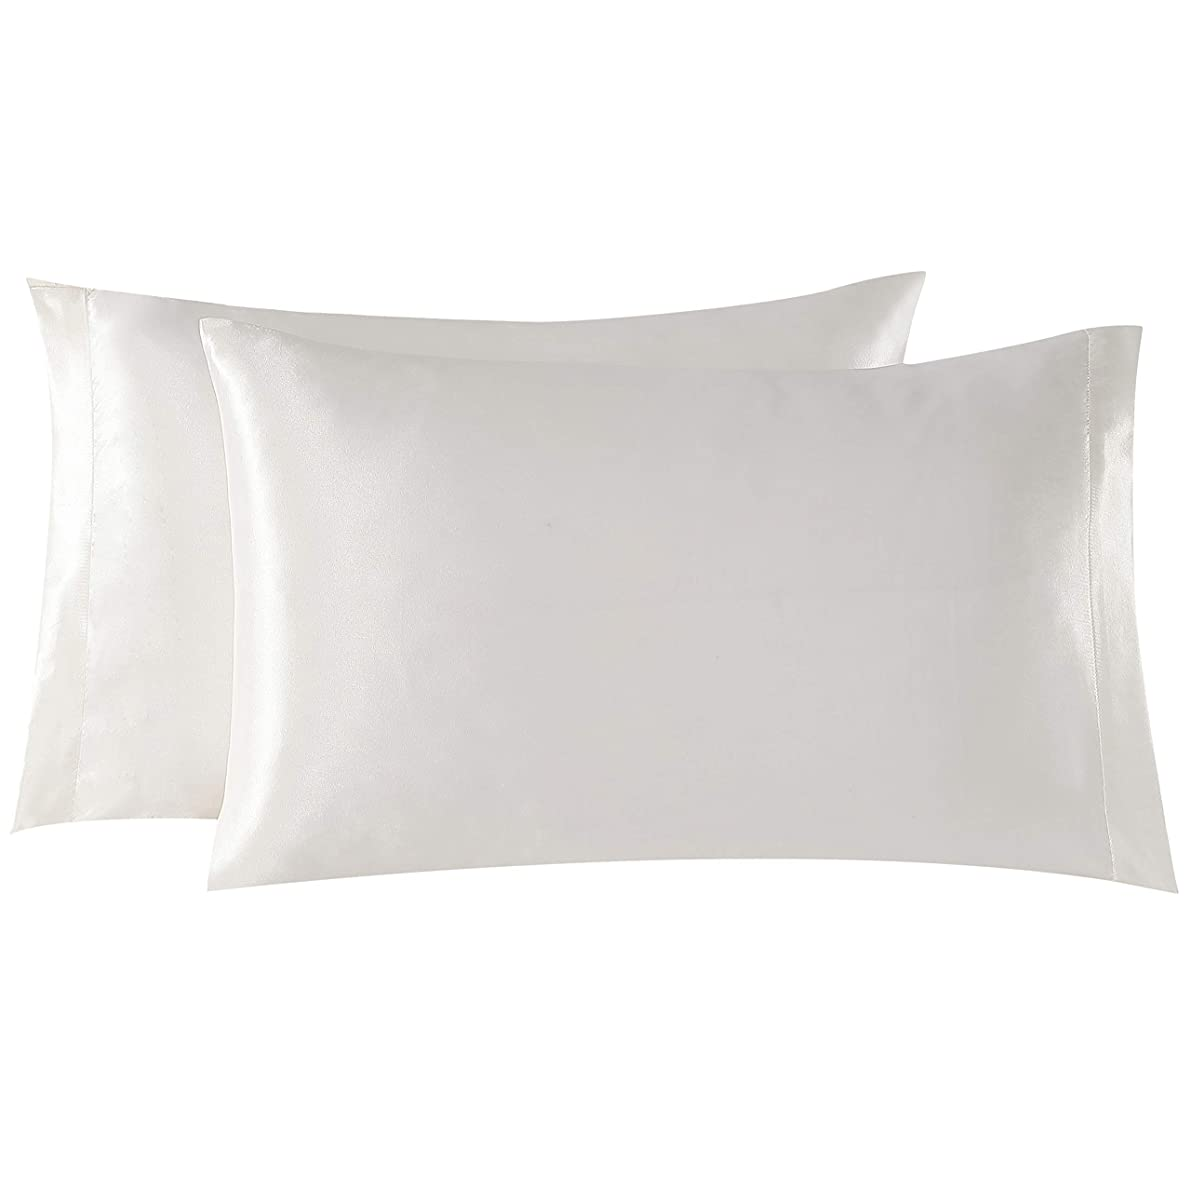 EXQ Home Satin Pillowcases Set of 2 for Hair and Skin Standard/Queen Size 20x30 Ivory Pillow Case with Envelope Closure (Anti Wrinkle,Hypoallergenic,Wash-Resistant)